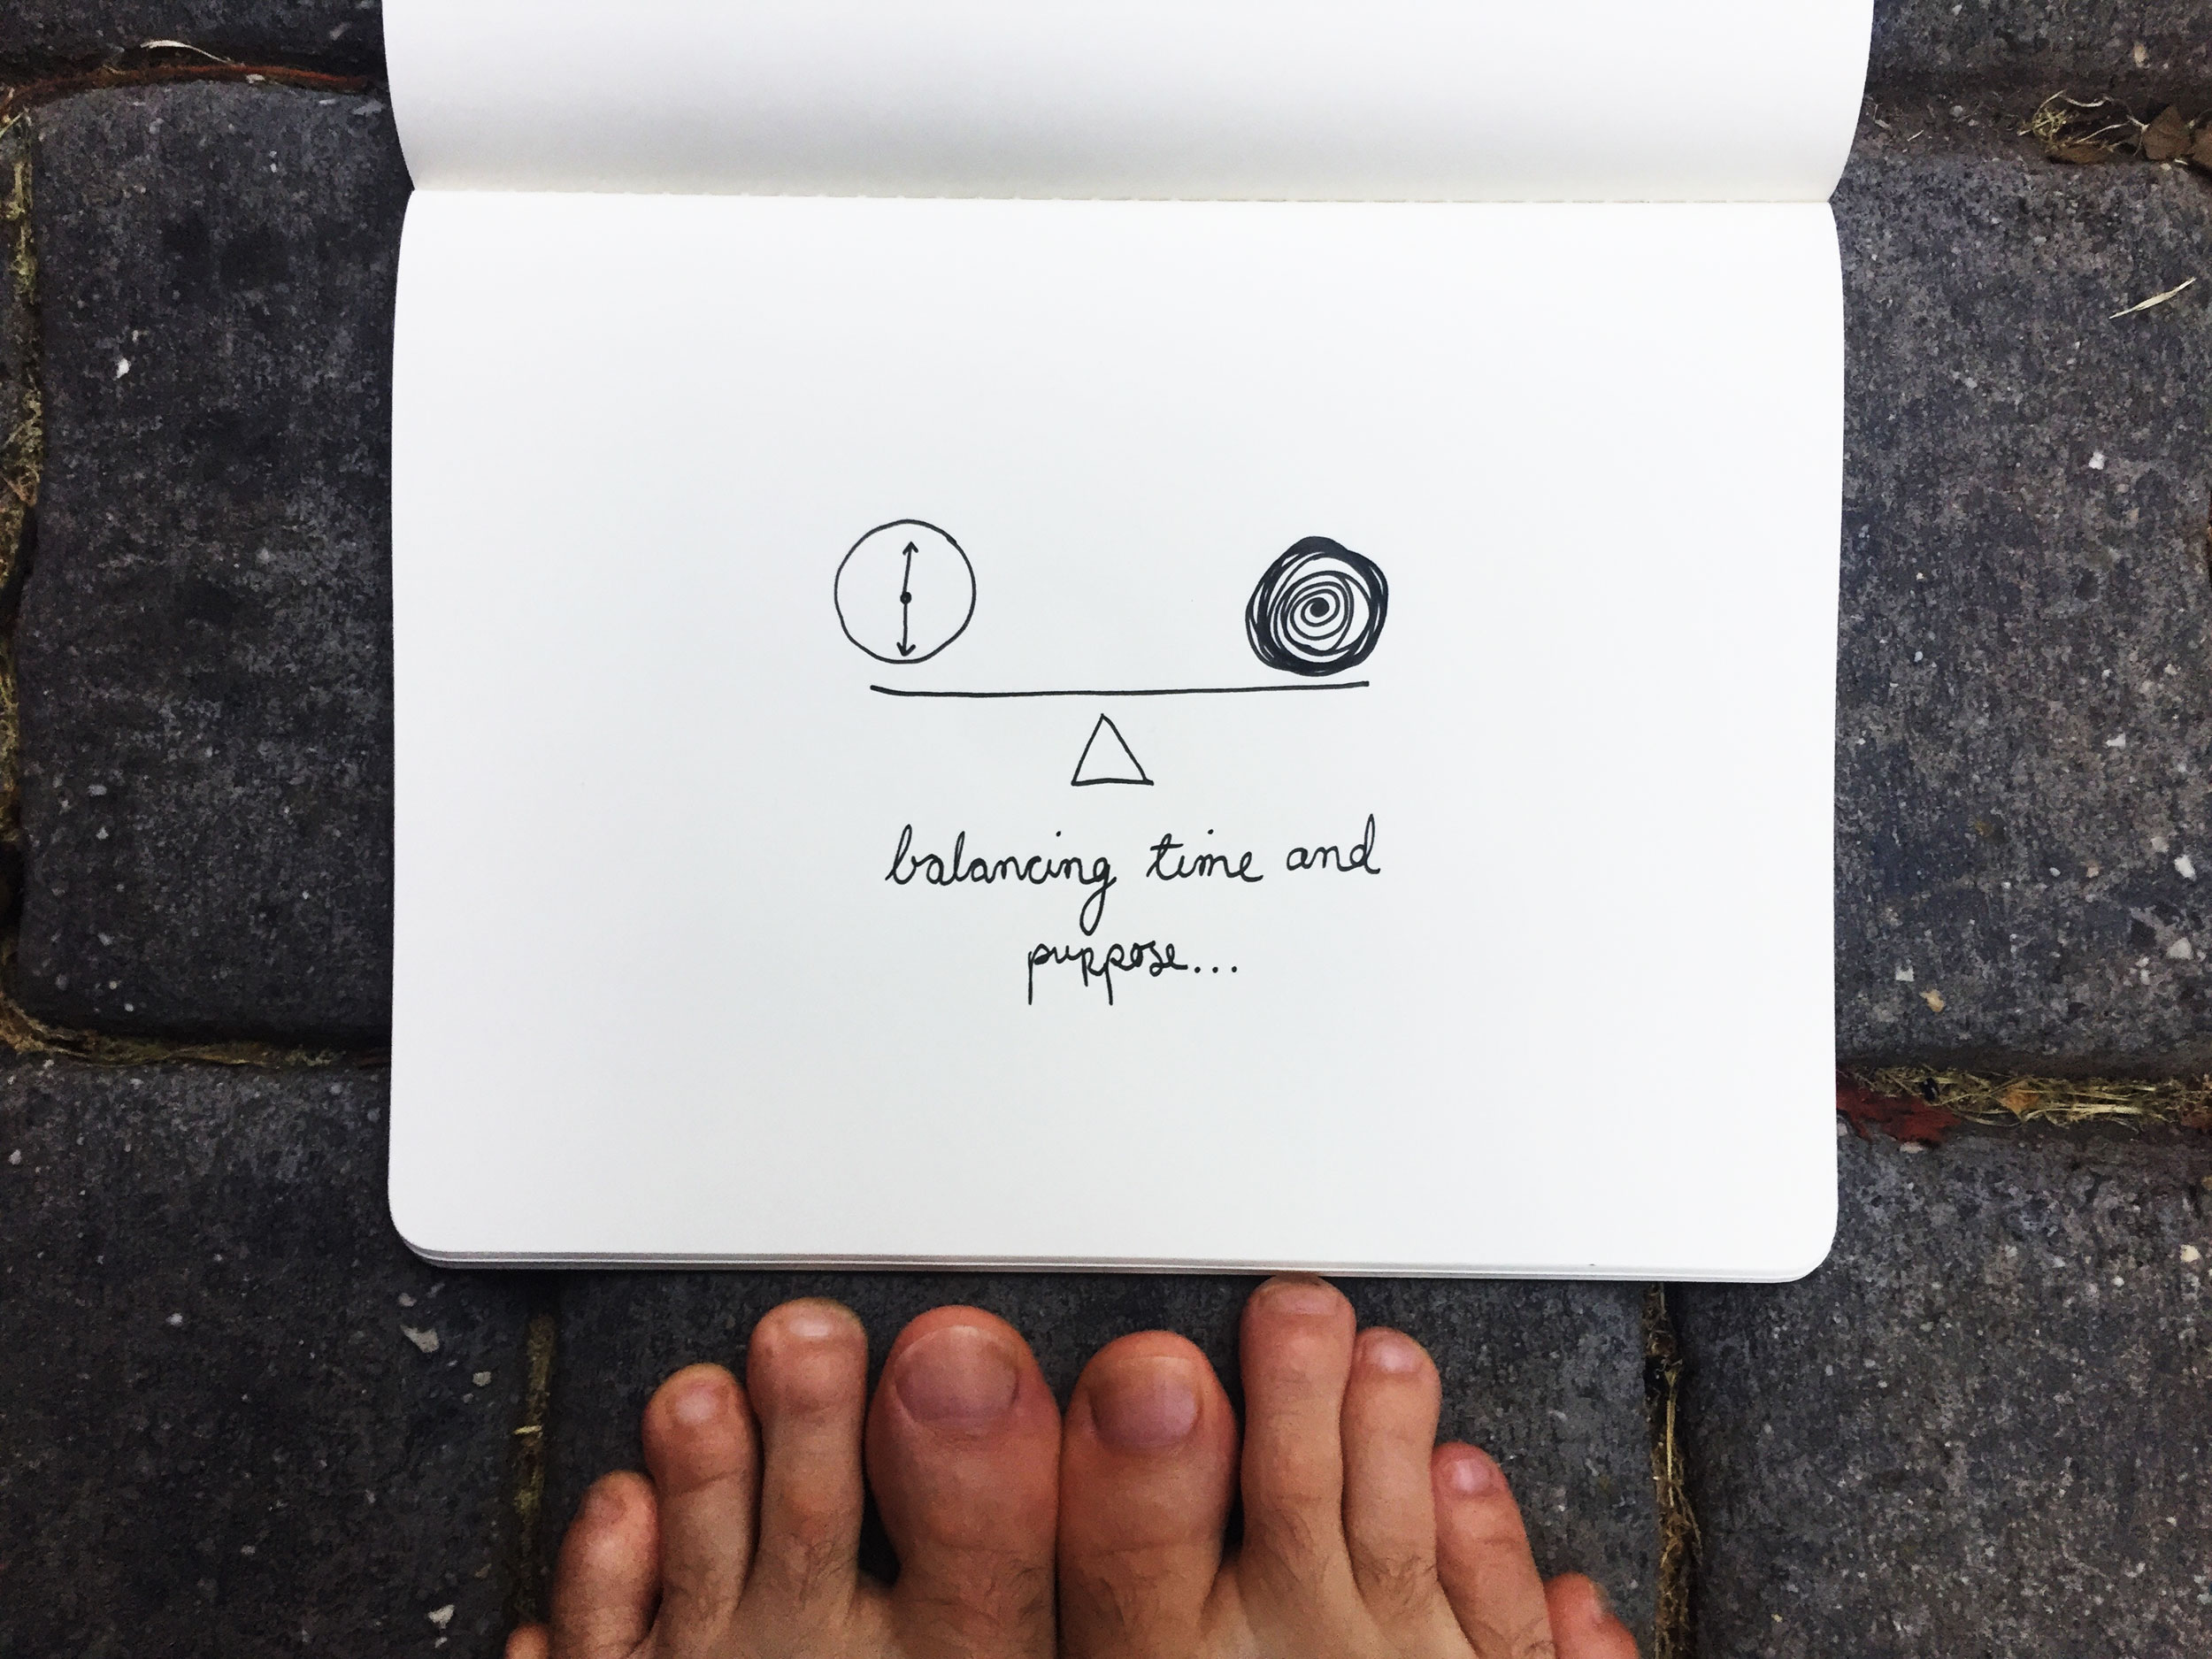 Time and purpose. Drawing Luke Hockley.